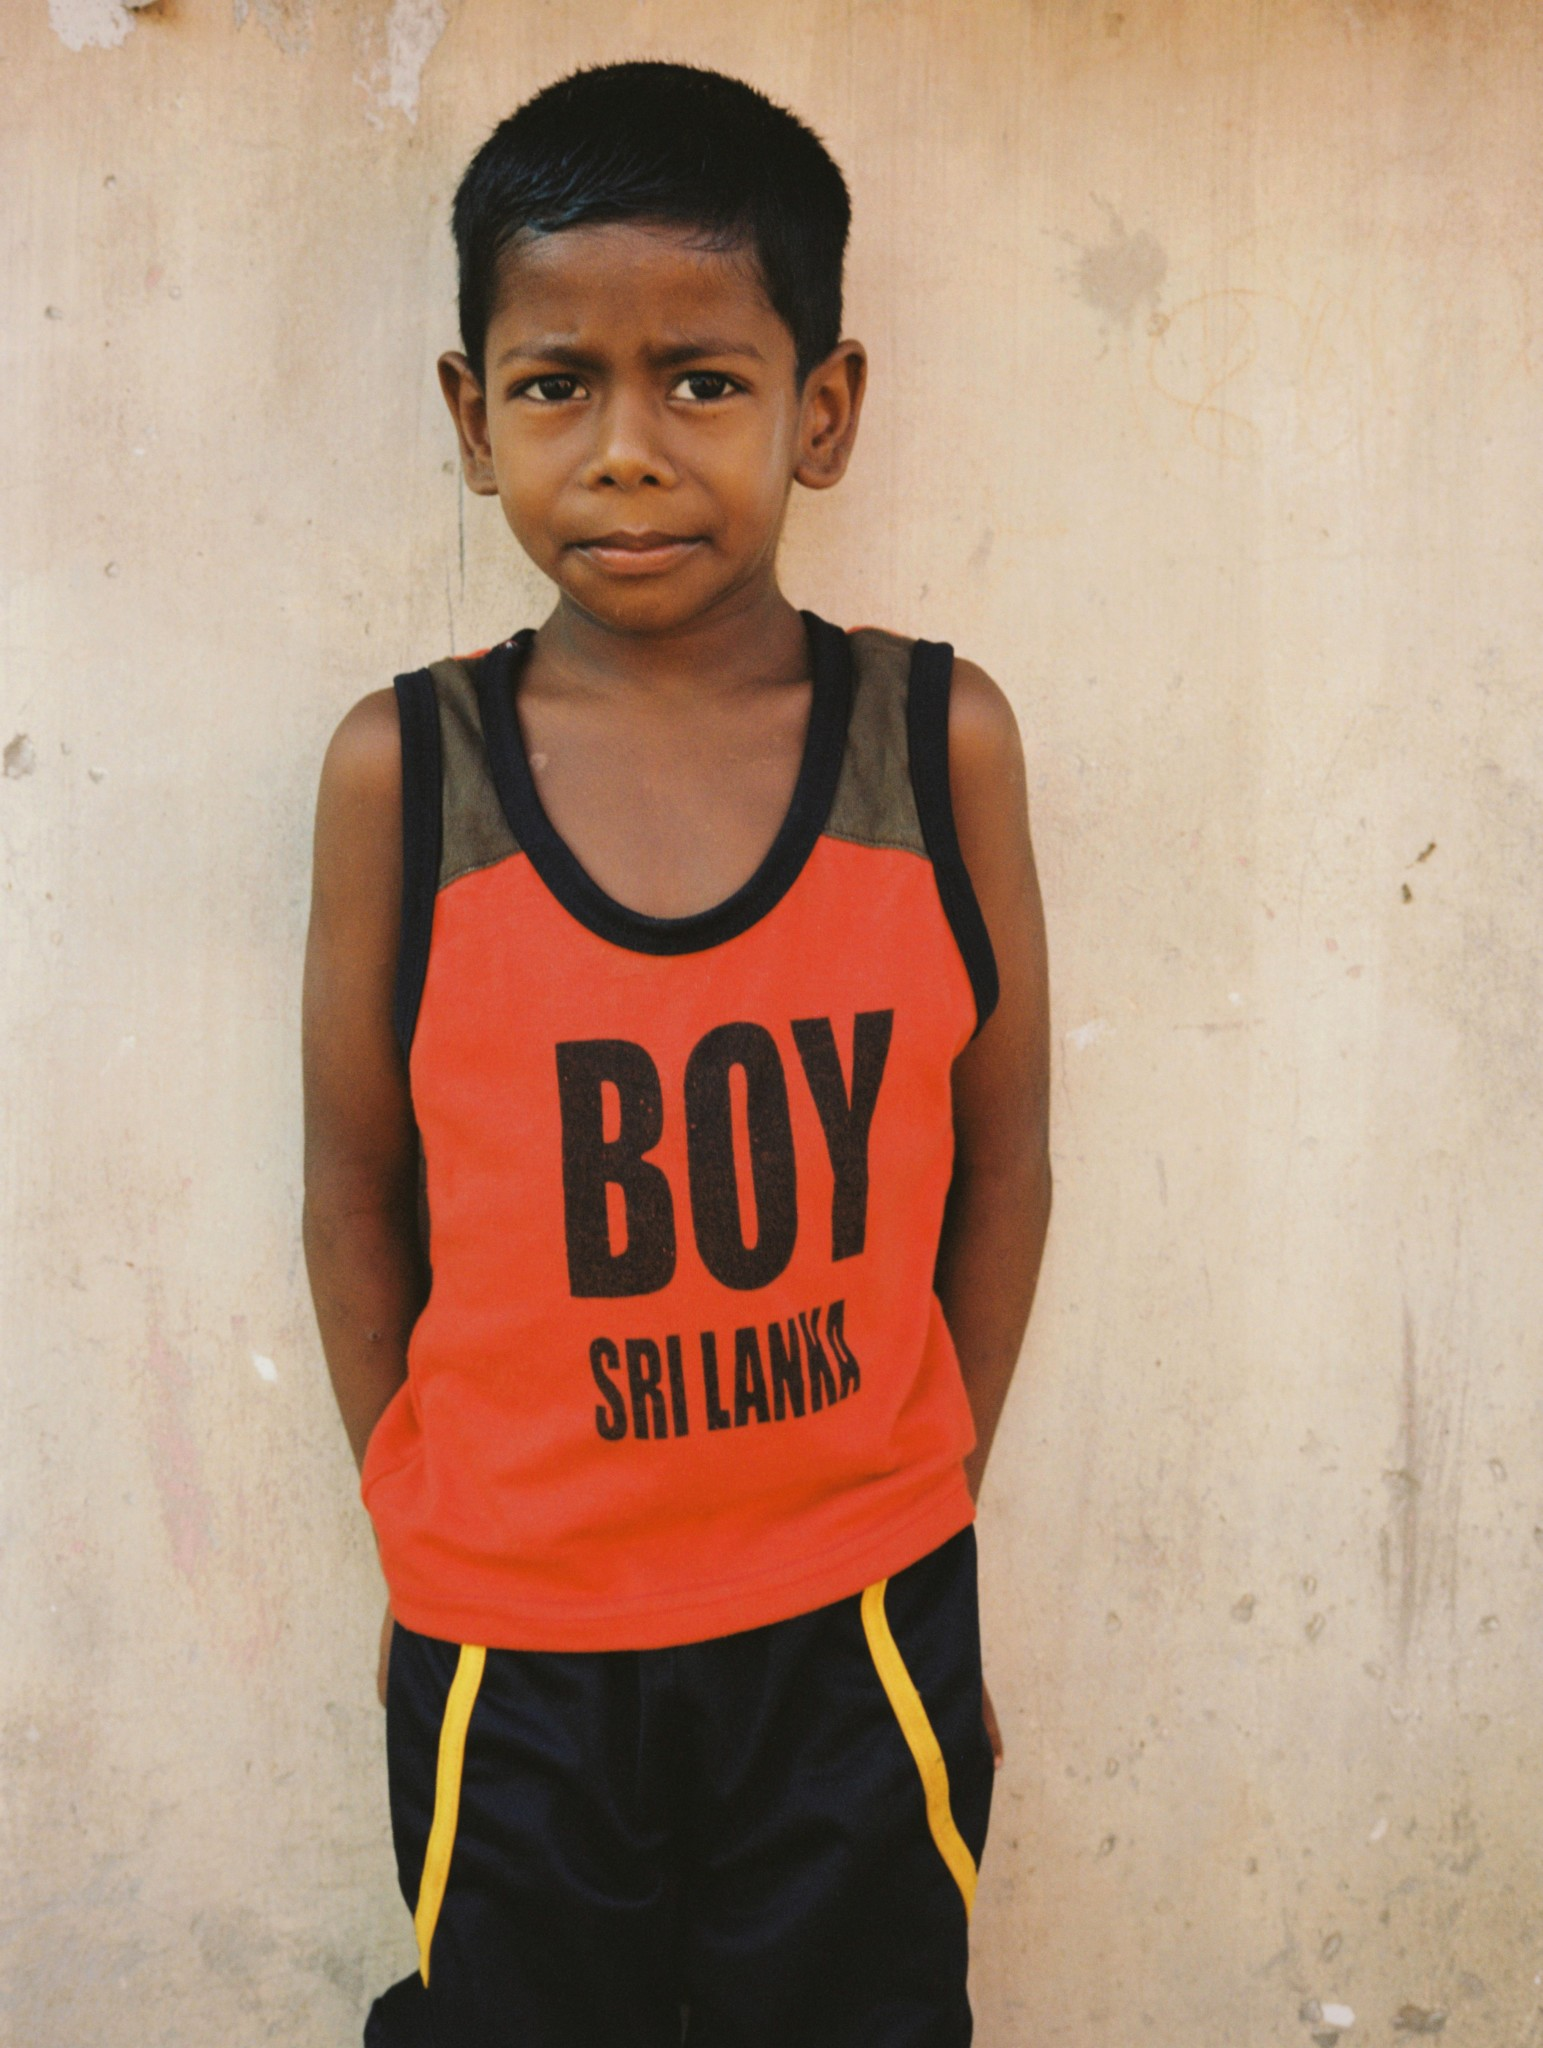 boy in gurunagar sri lanka